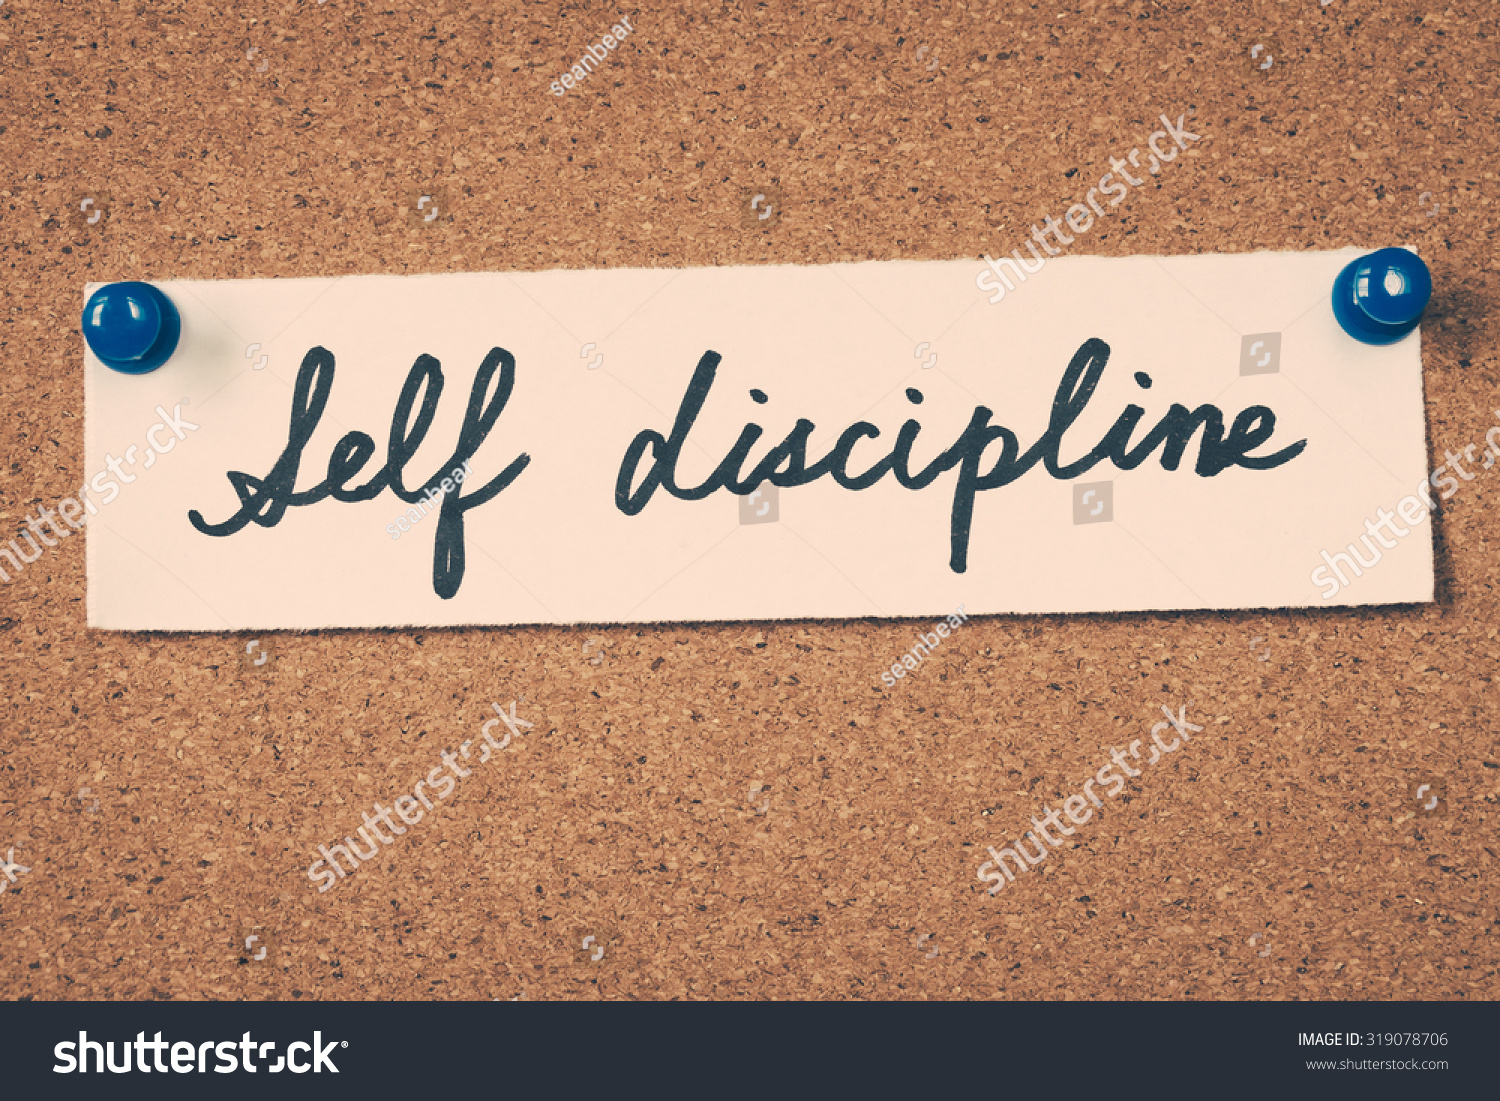 Self Discipline Stock Photo 319078706 - Shutterstock